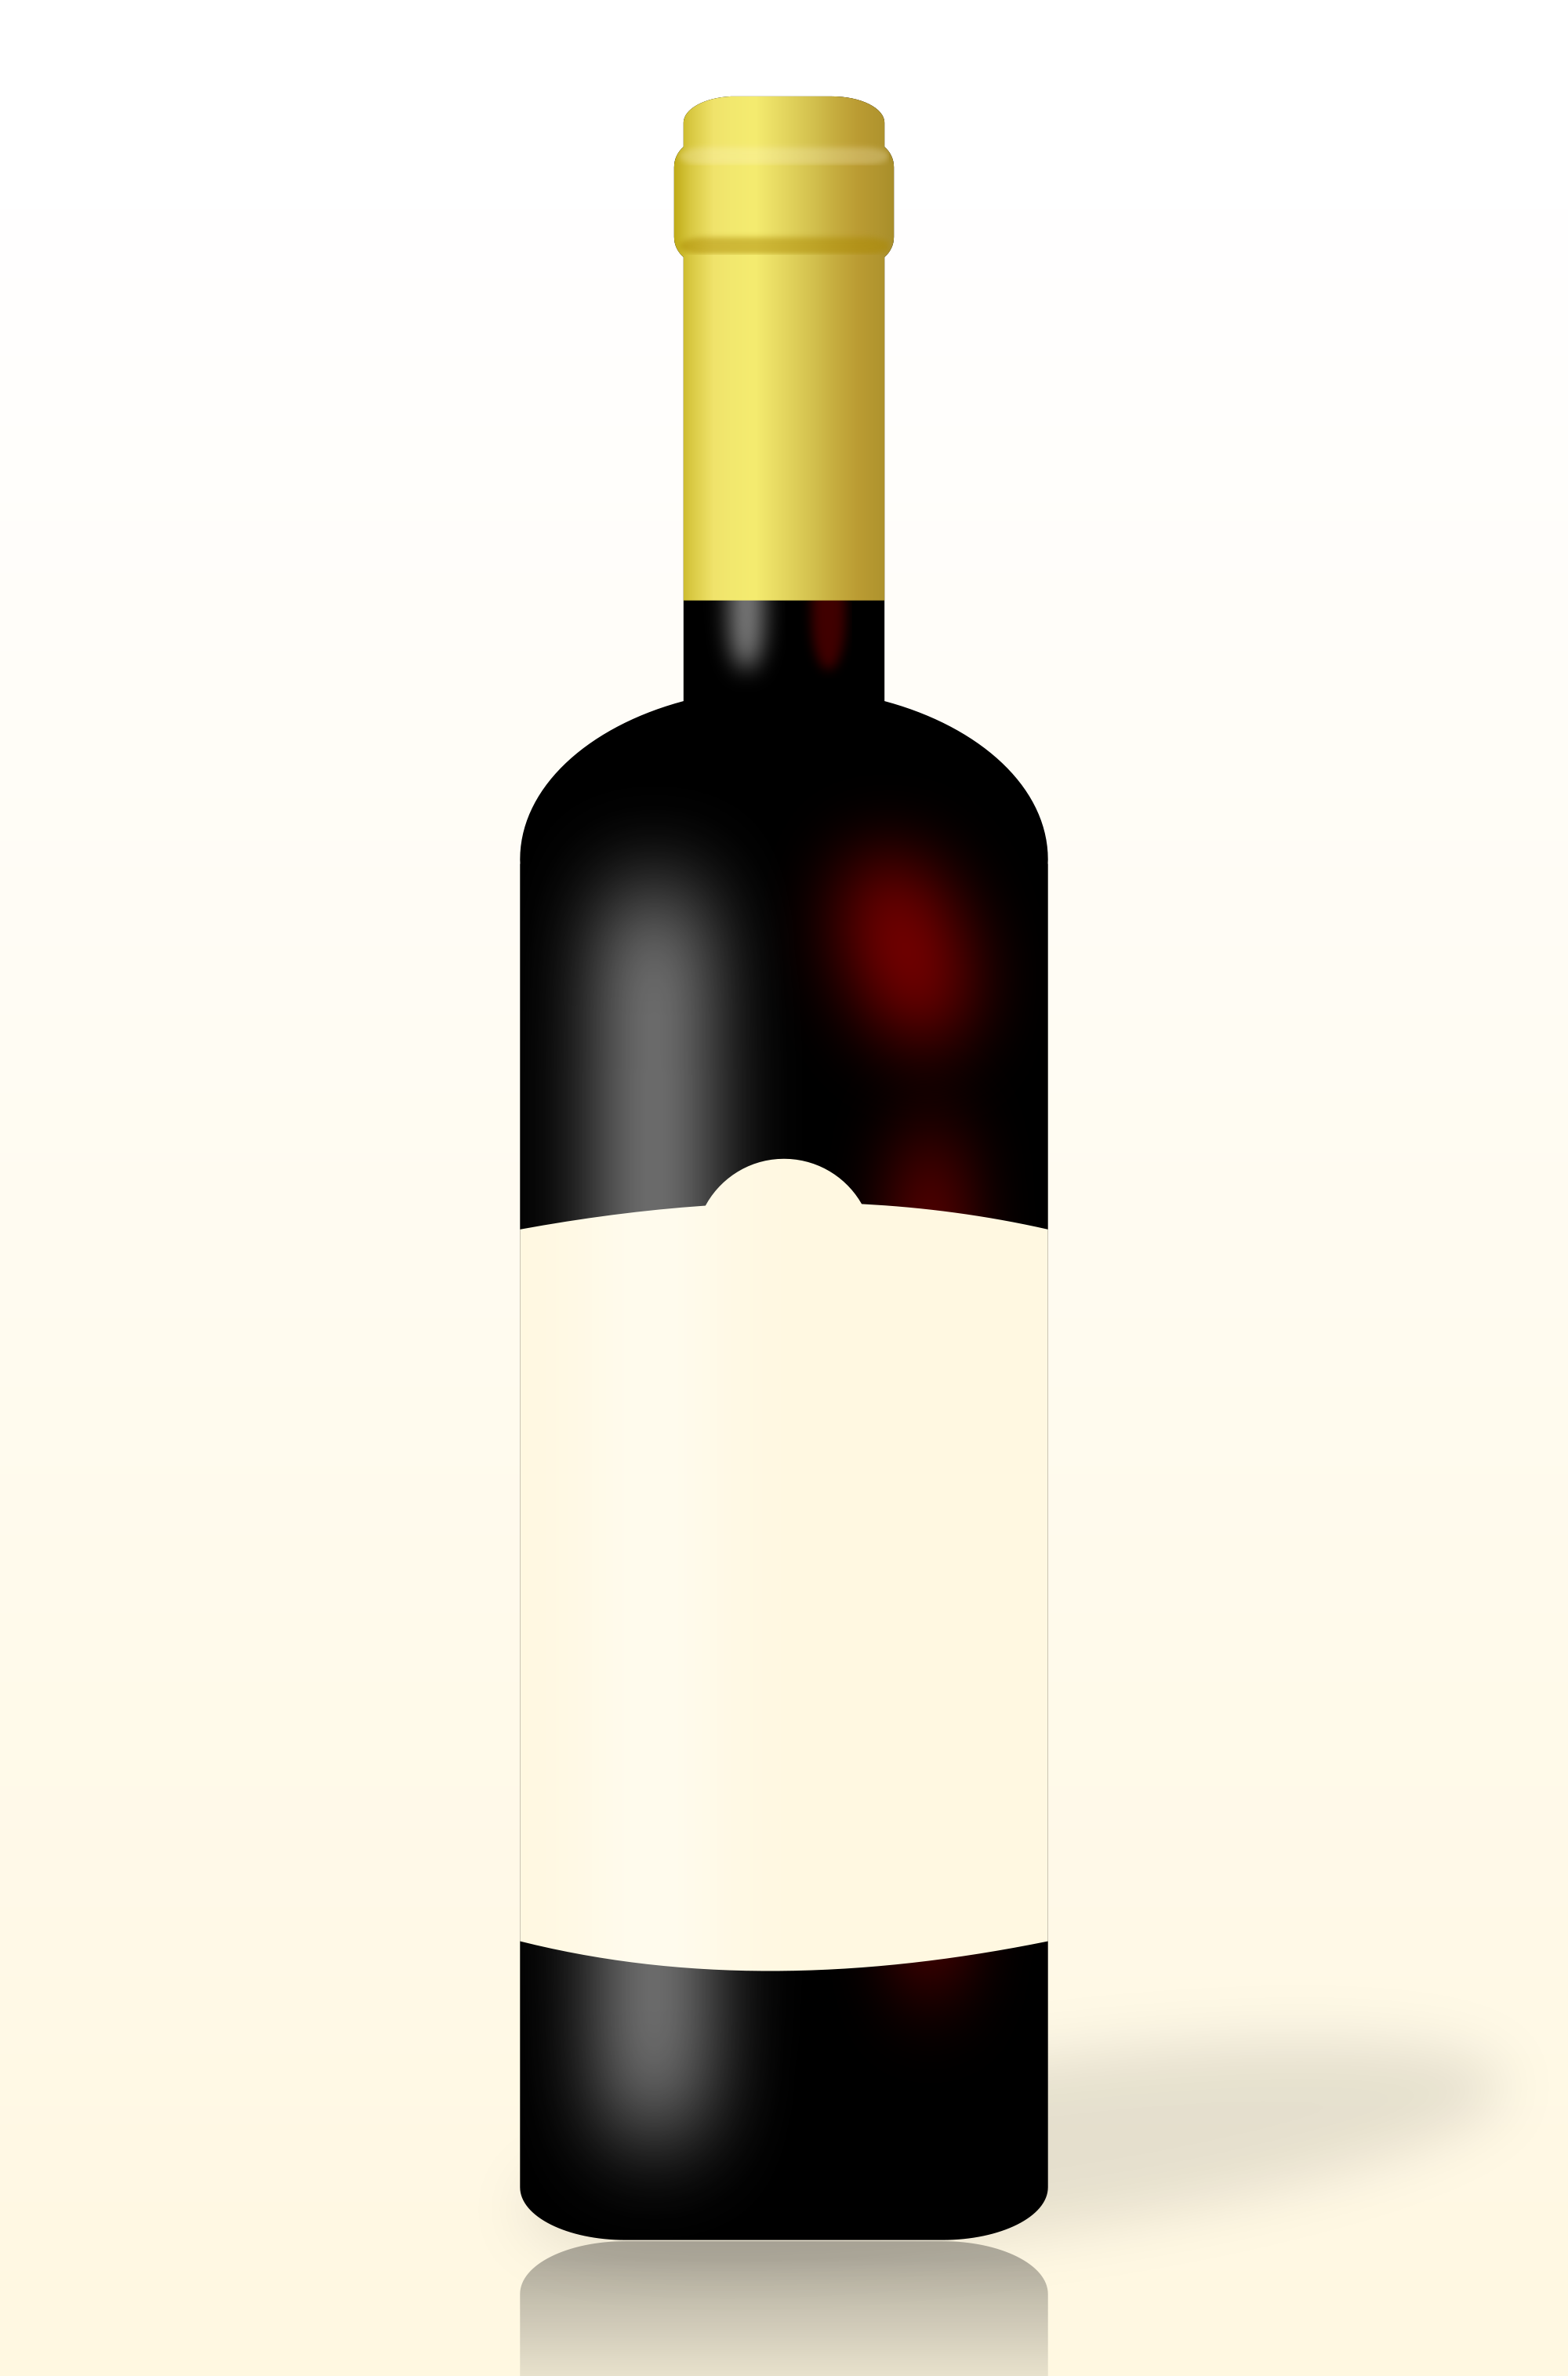 Bottles svg #18, Download drawings